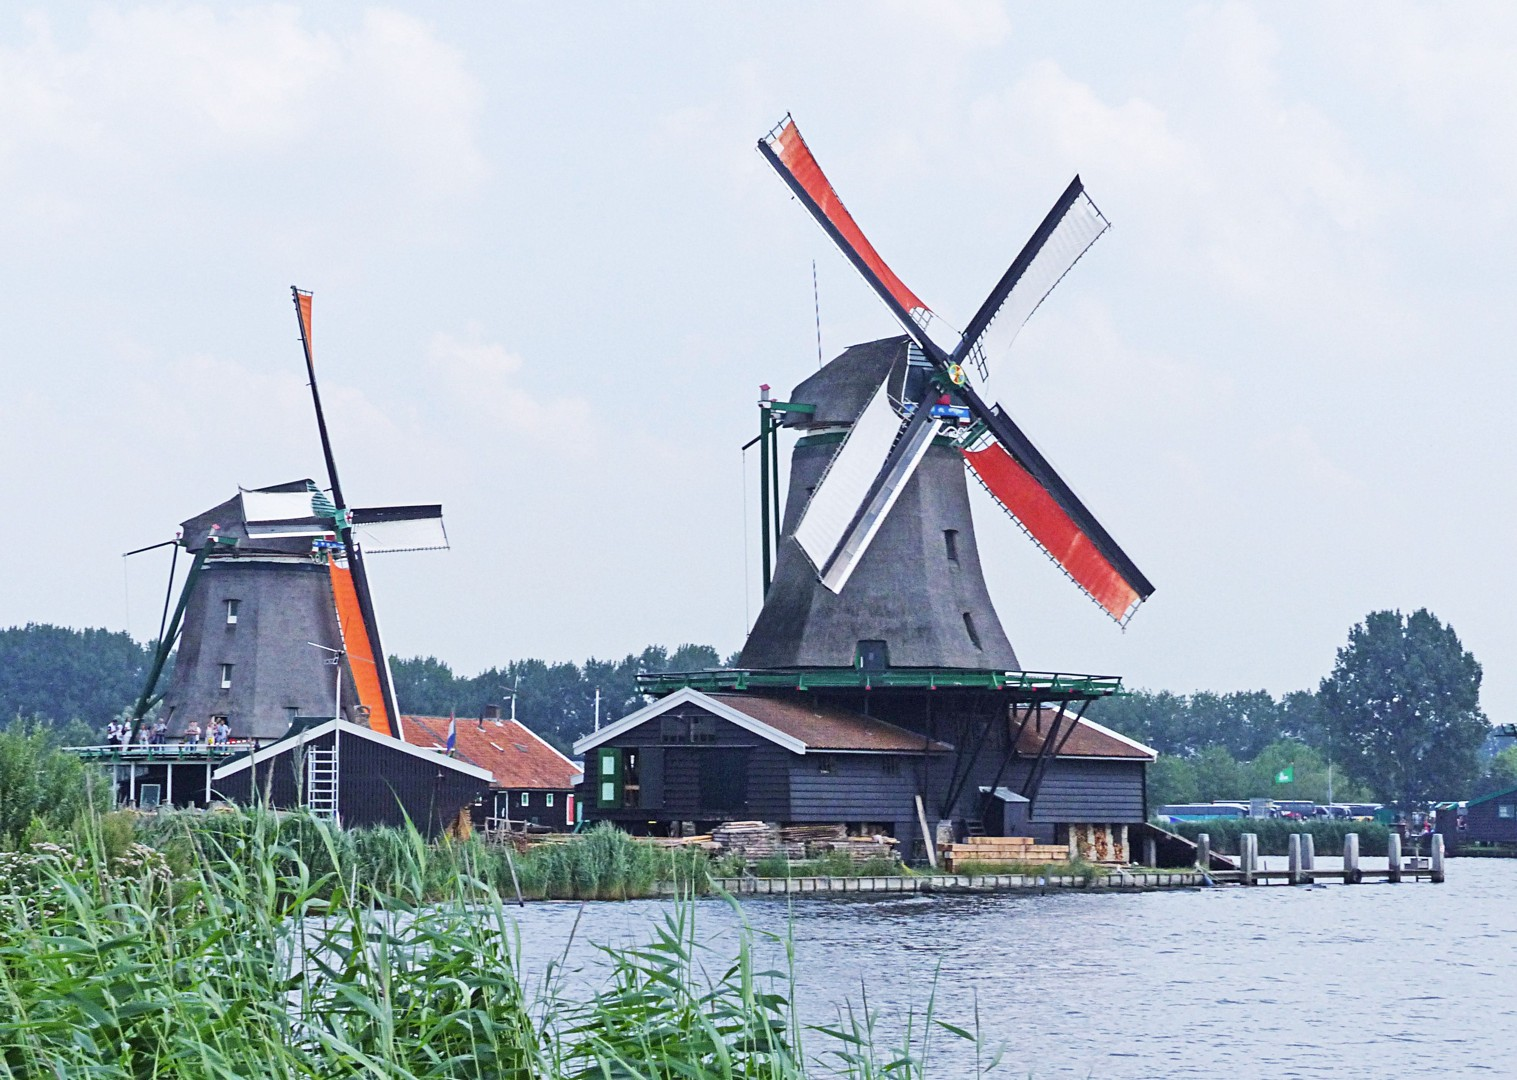 zaanse-schans-cycling-holiday-in-holland-bike-and-barge-holiday.jpg - Holland - Windmills and Golden Beaches - Bike and Barge Holiday - Family Cycling